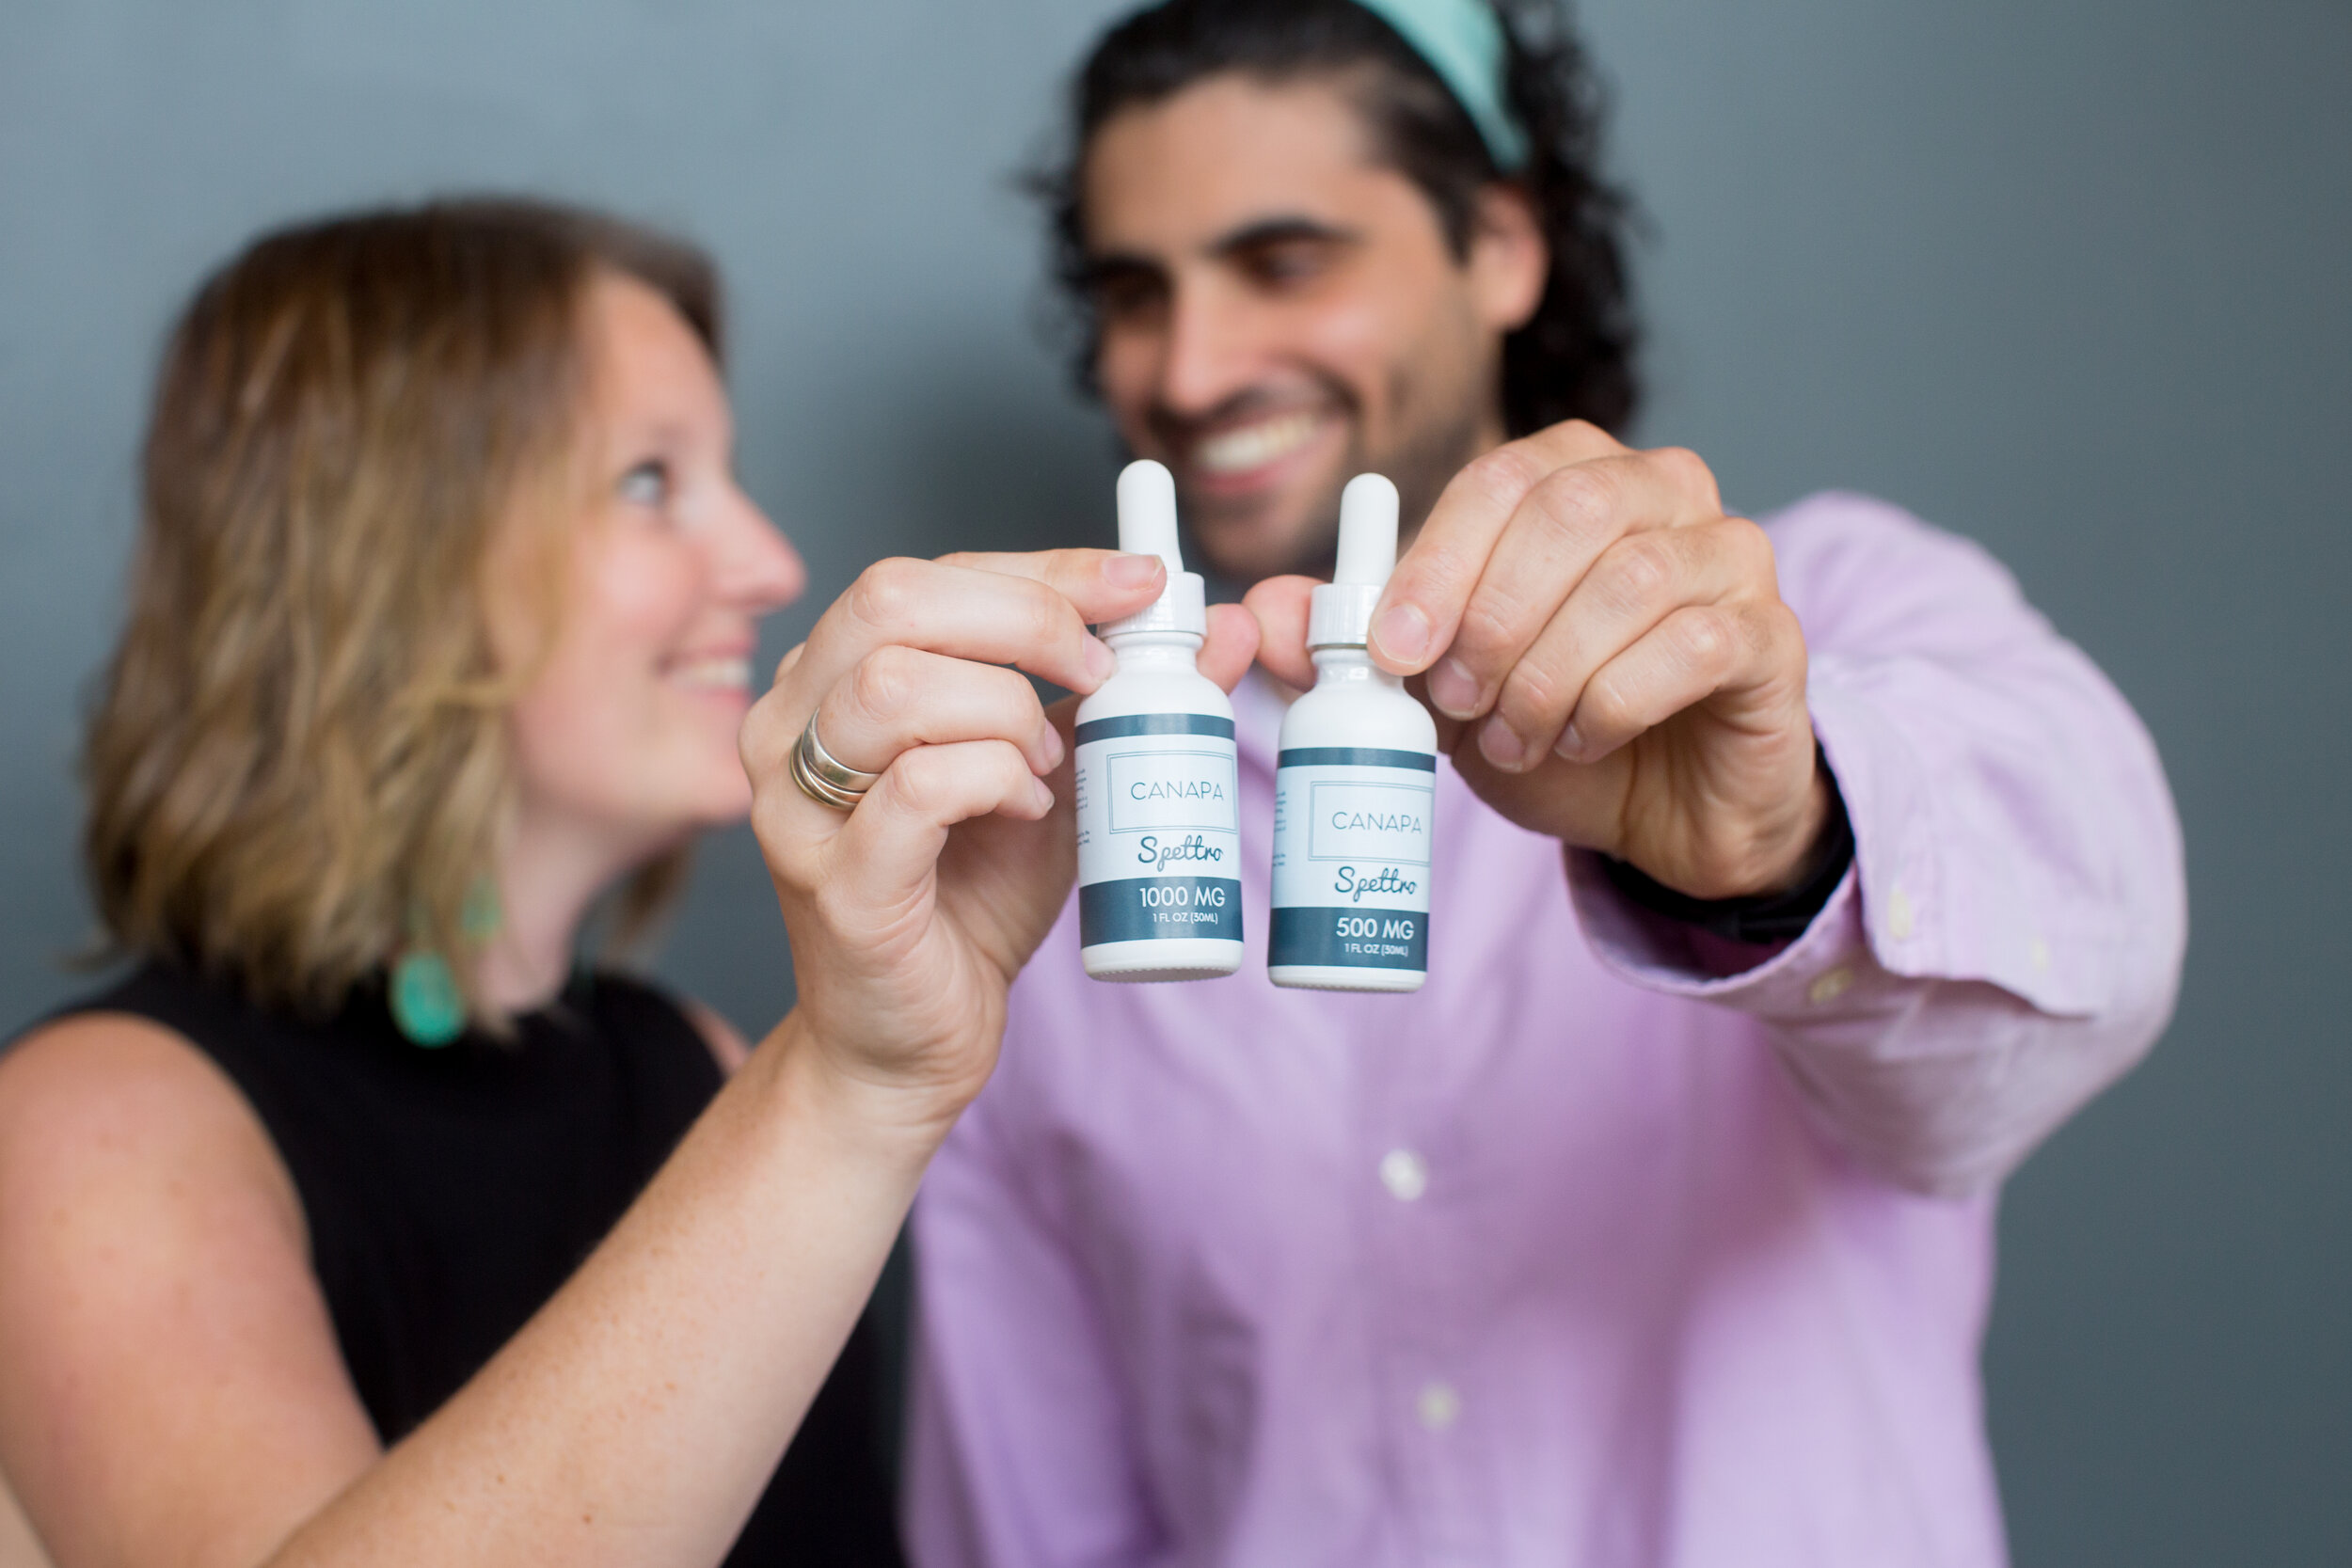 Meet The Founders - Molly and Rubin came to this wild industry for three reasons - a passion for CBD, a frustration with the lack of transparency in the industry, and chronic migraines.